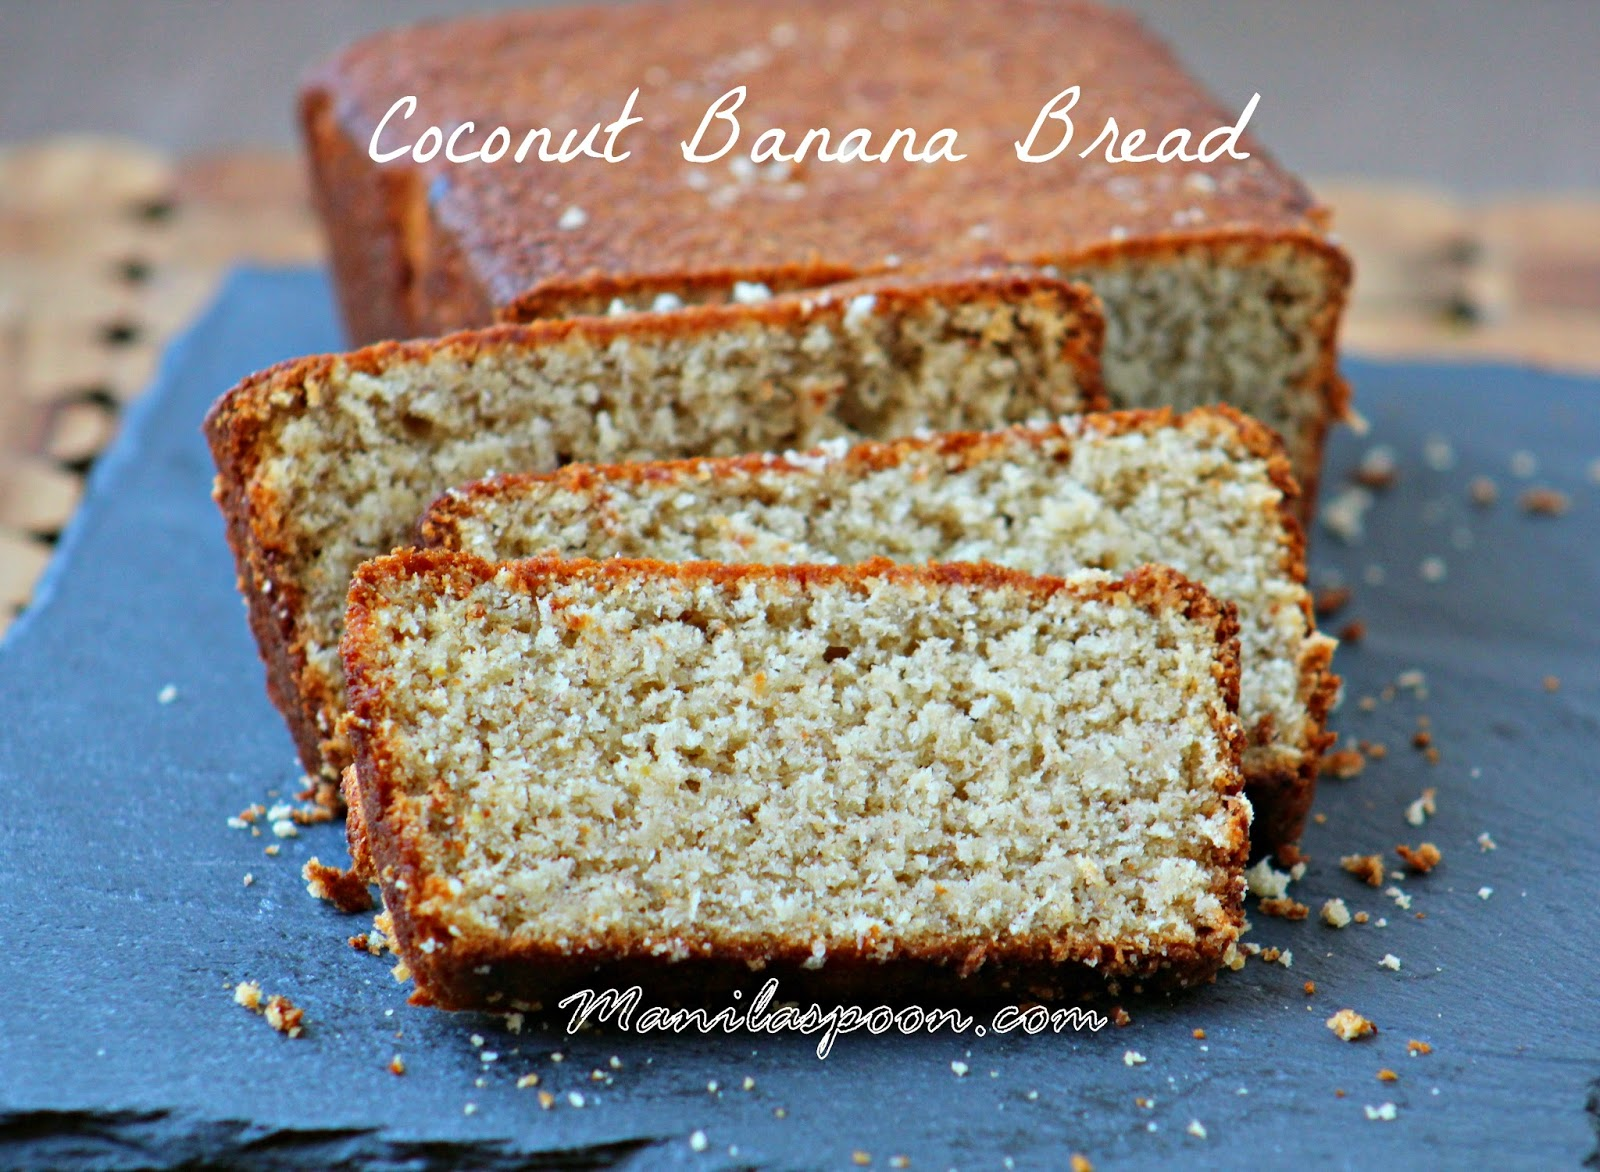 Coconut Banana Loaf (Bread)